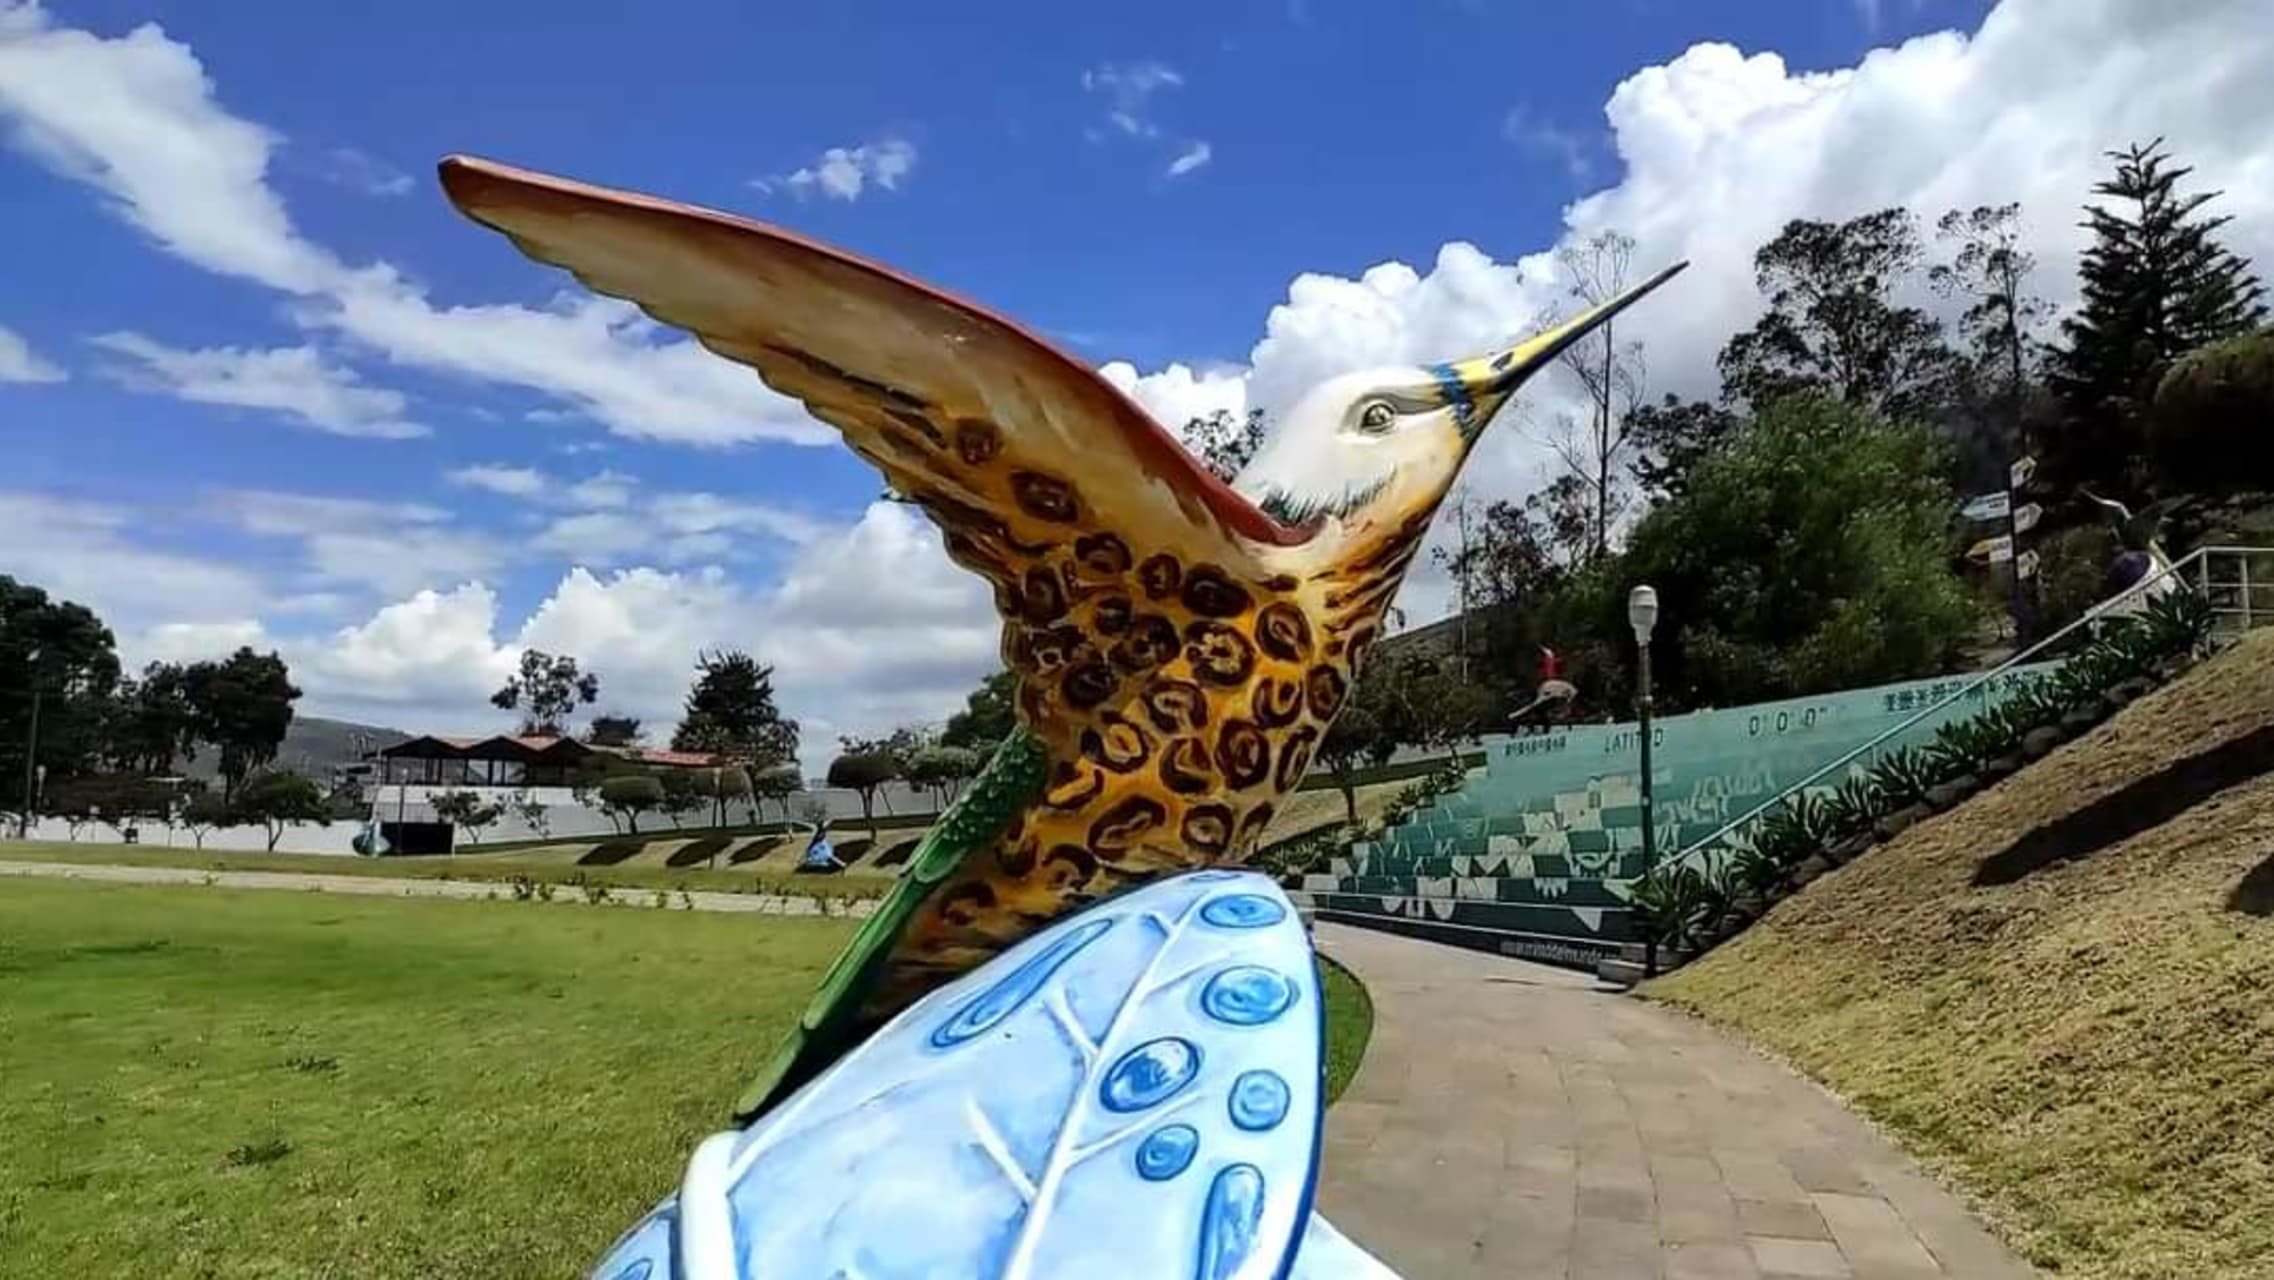 Quito - Hummingbird Sculptures in the Middle of the World